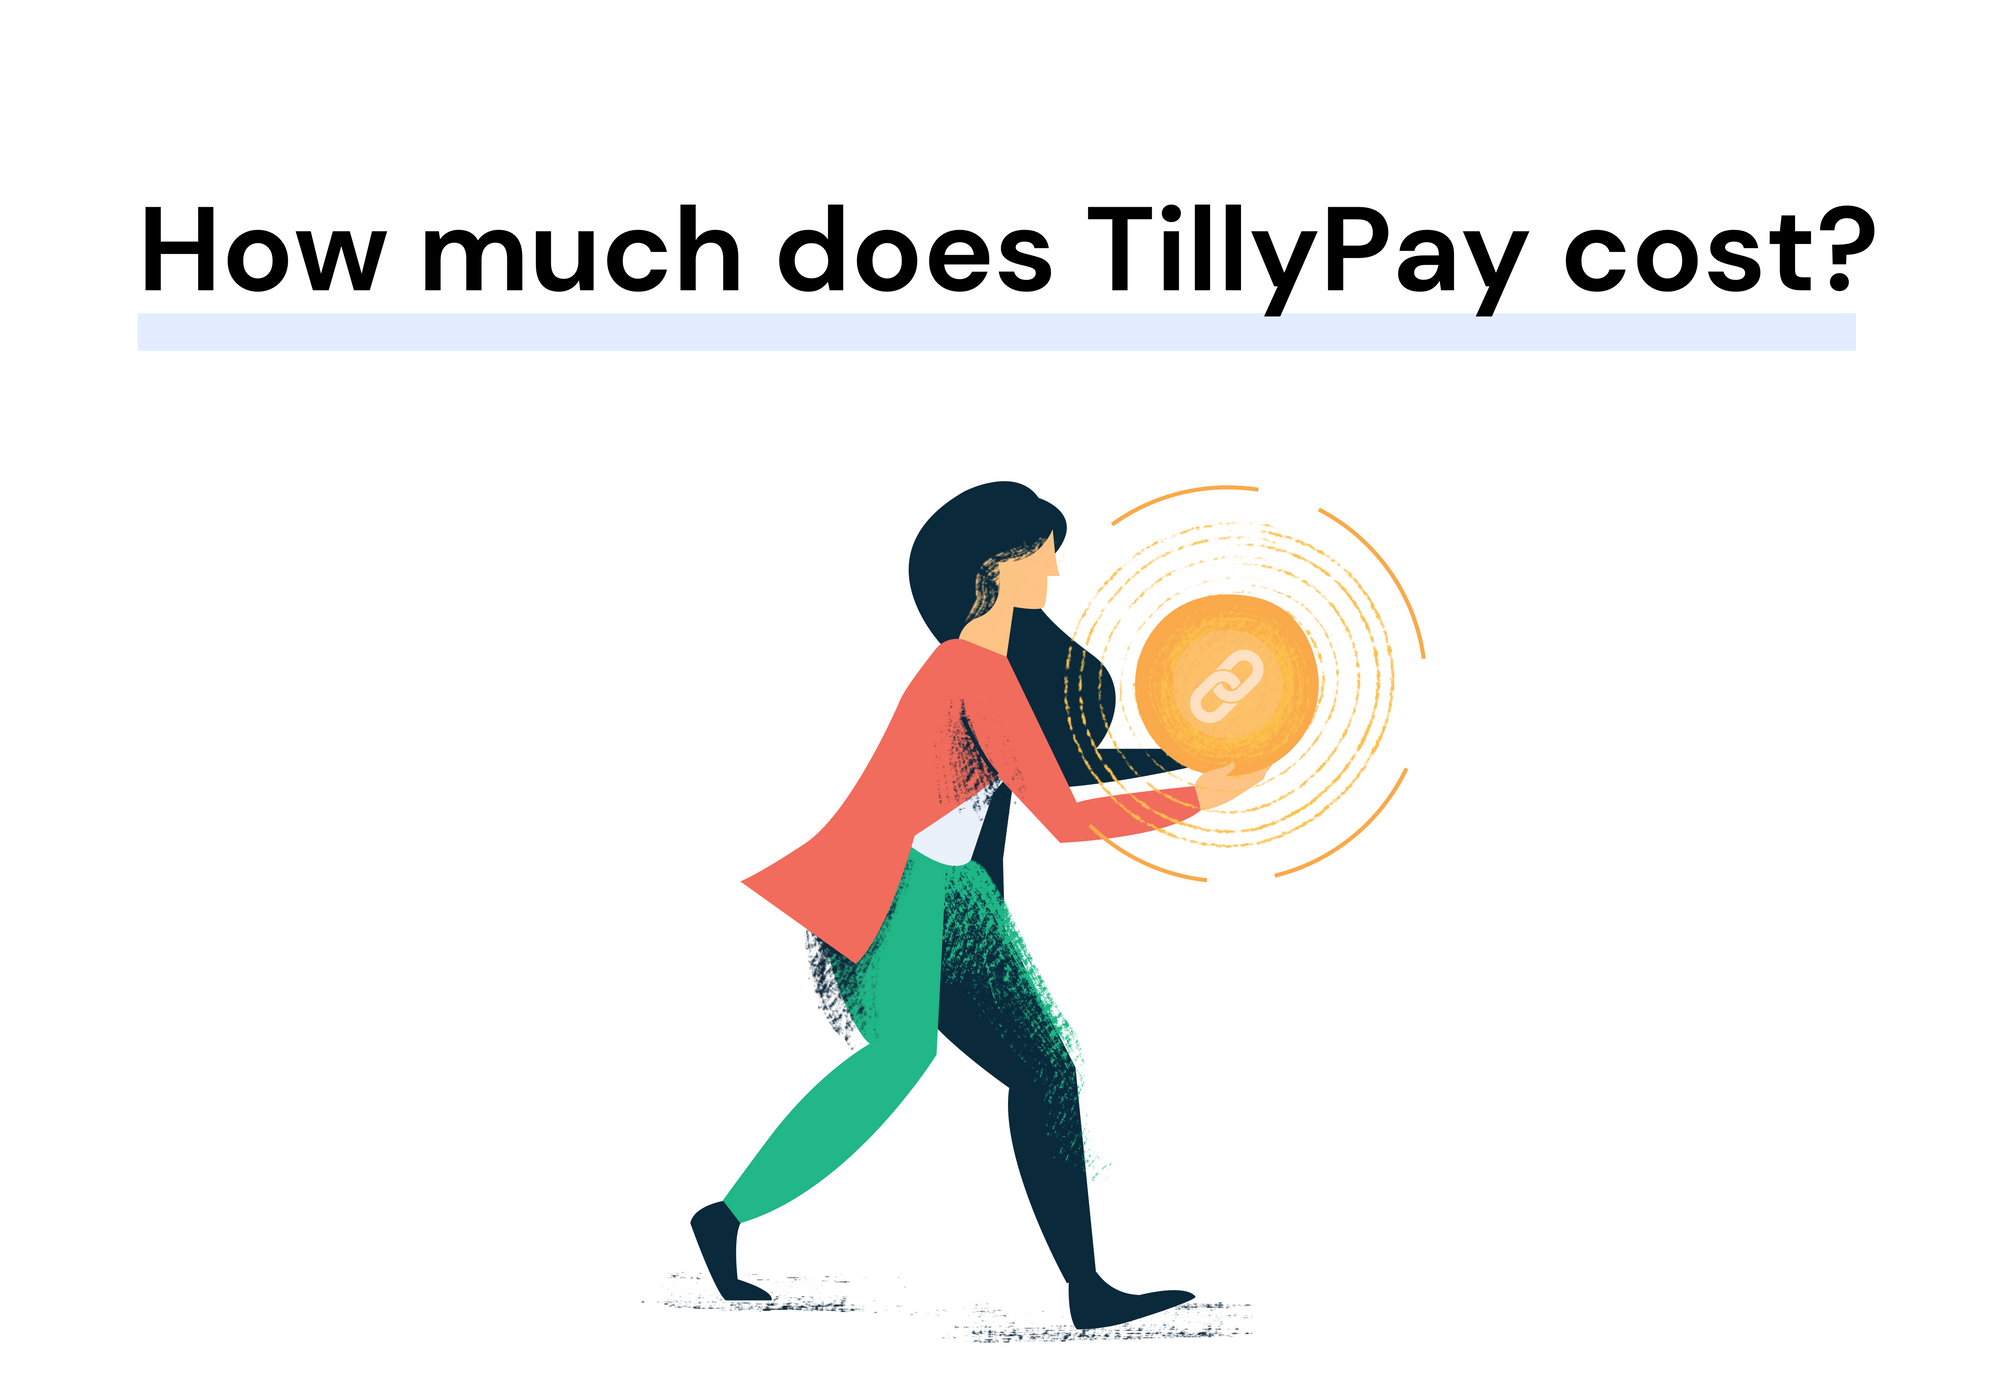 How much does TillyPay cost?